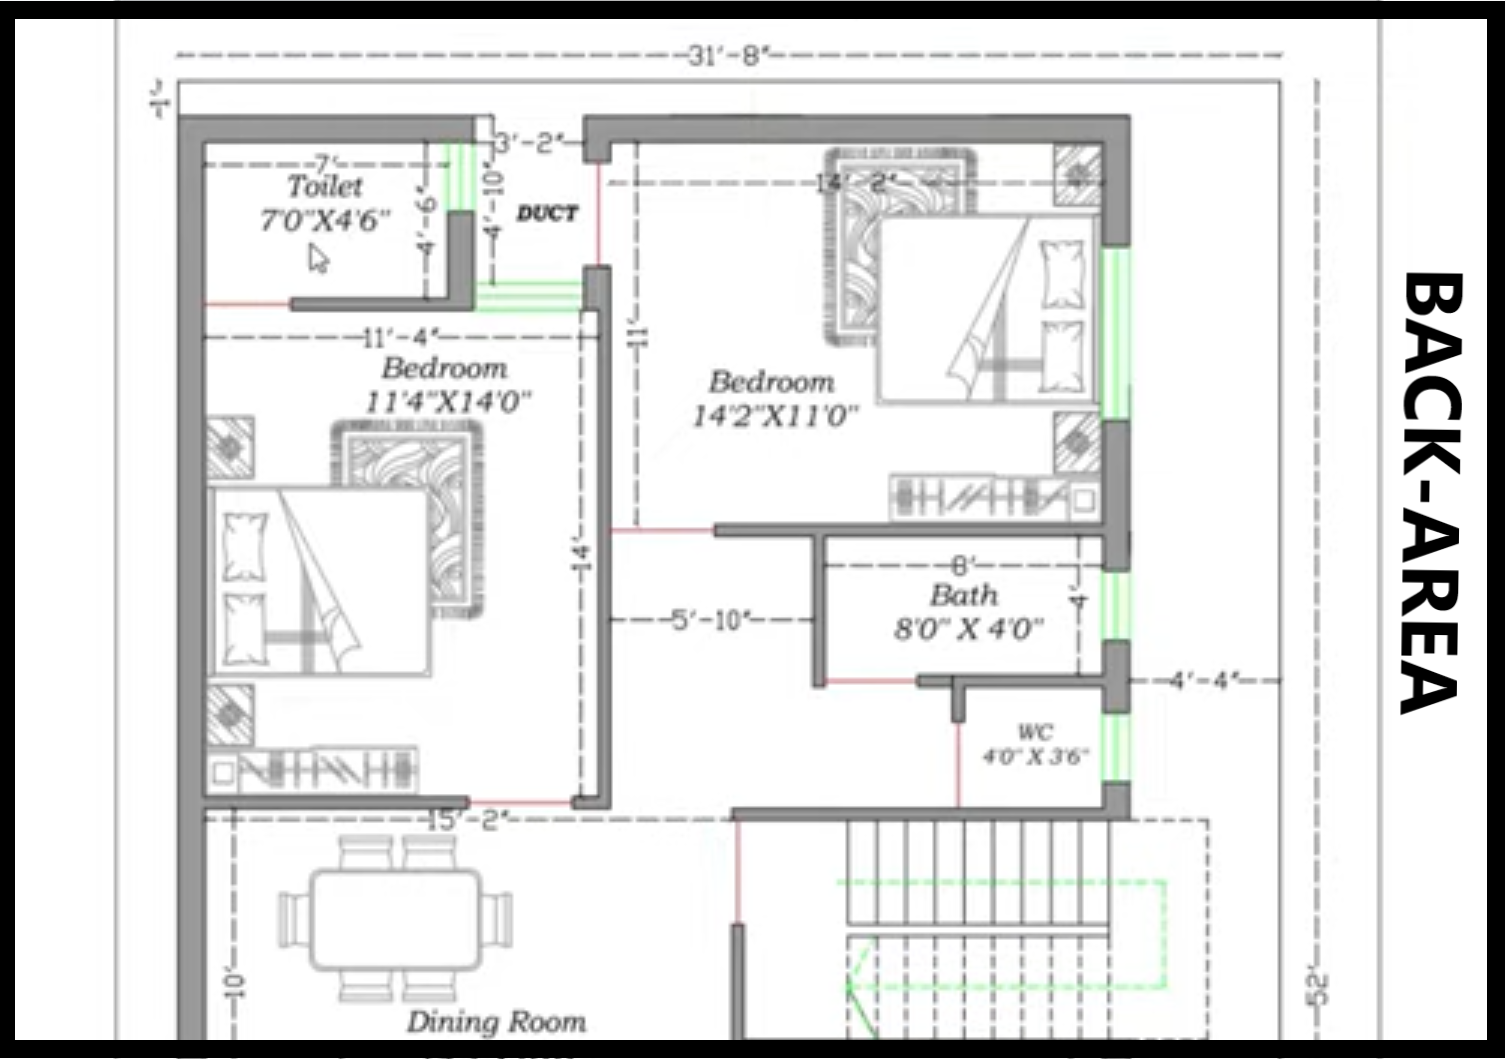 31 FEET BY 52 HOUSE PLAN